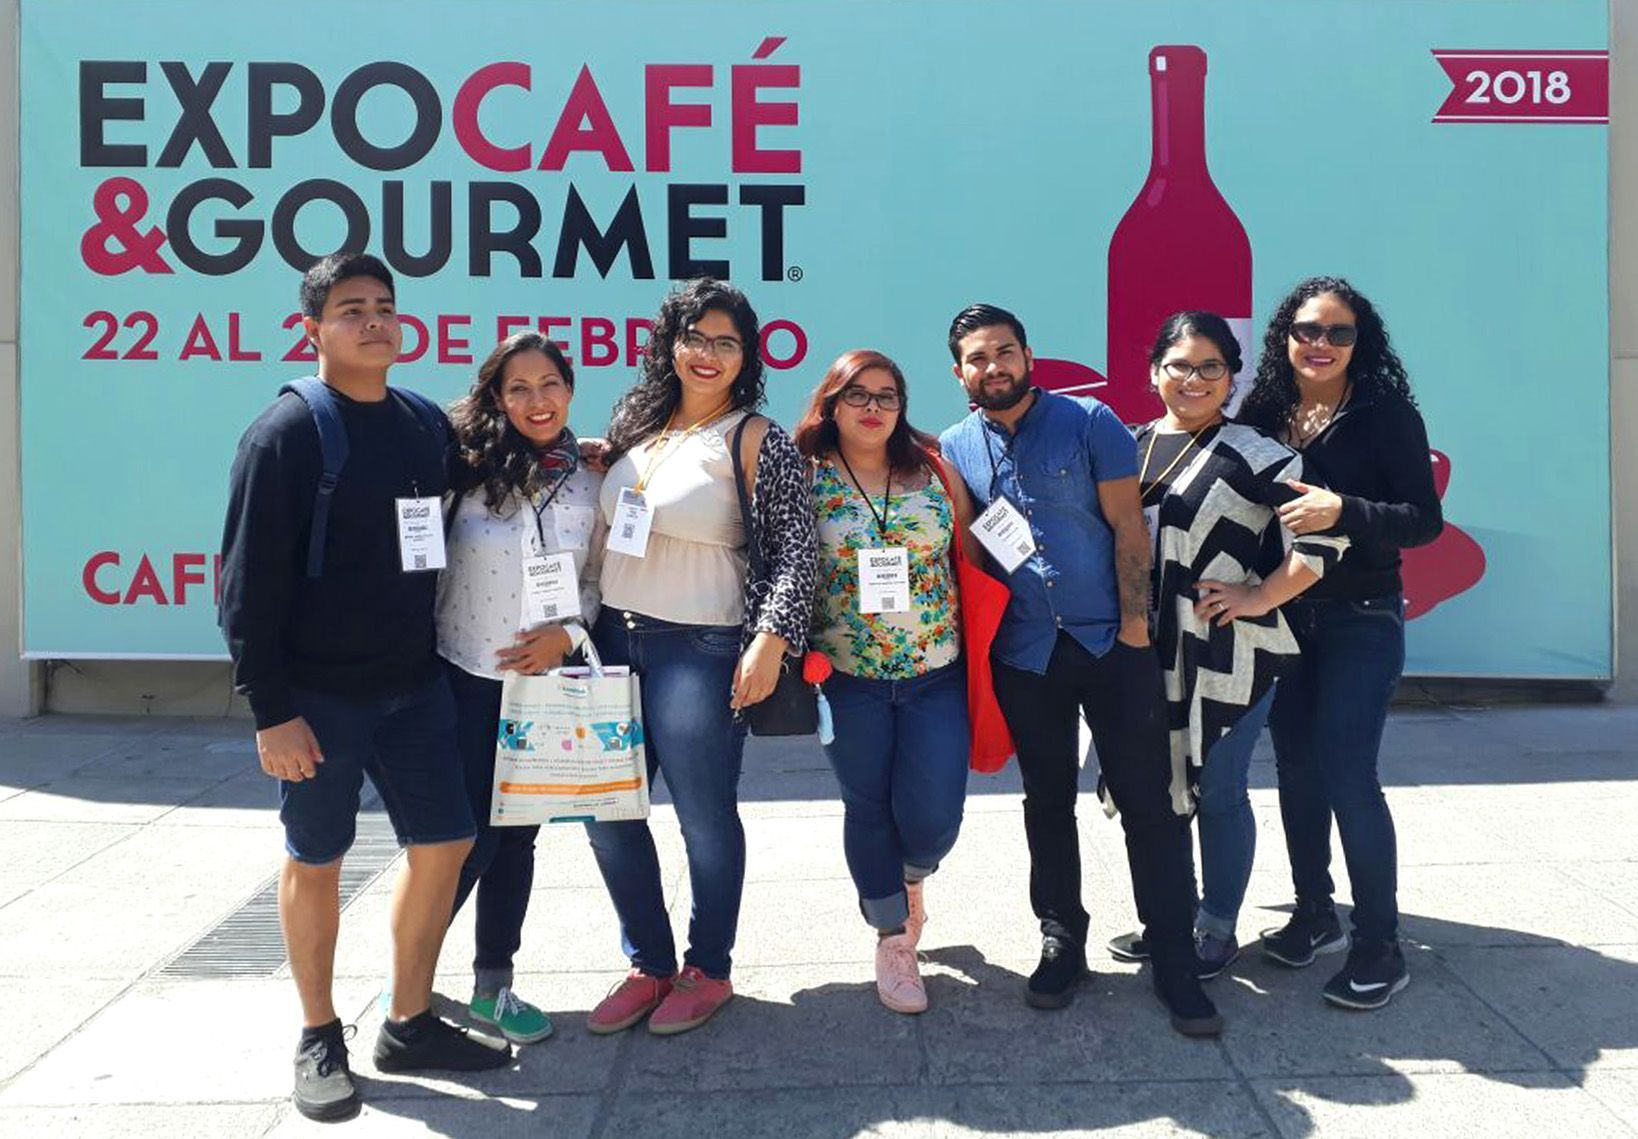 From left to right: Pablo, Karla, Niza, Alejandra, Ricardo, Laisa and Lety.